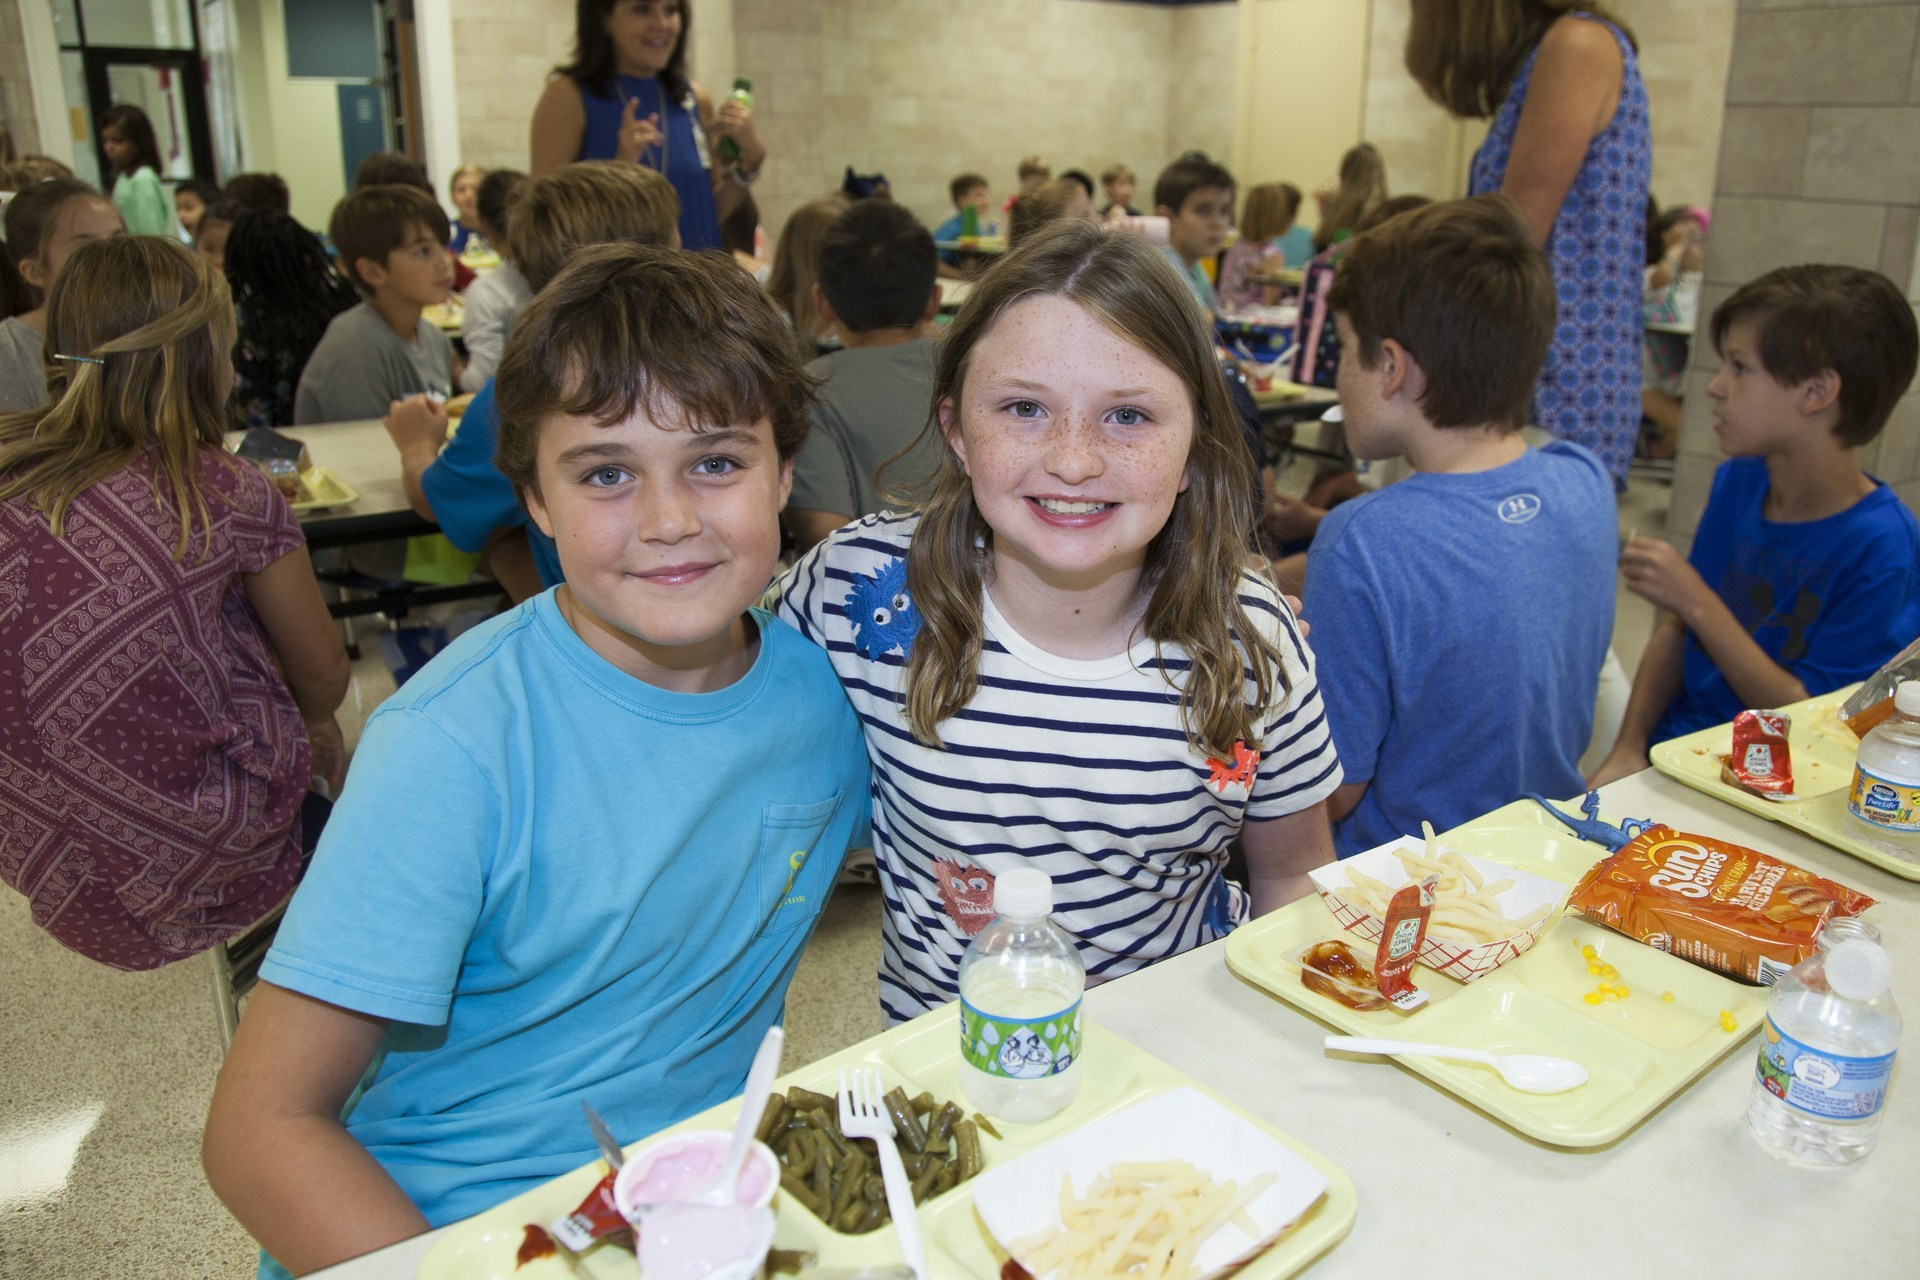 Two elementary school students enjoy their lunch at the Bradfield cafeteria